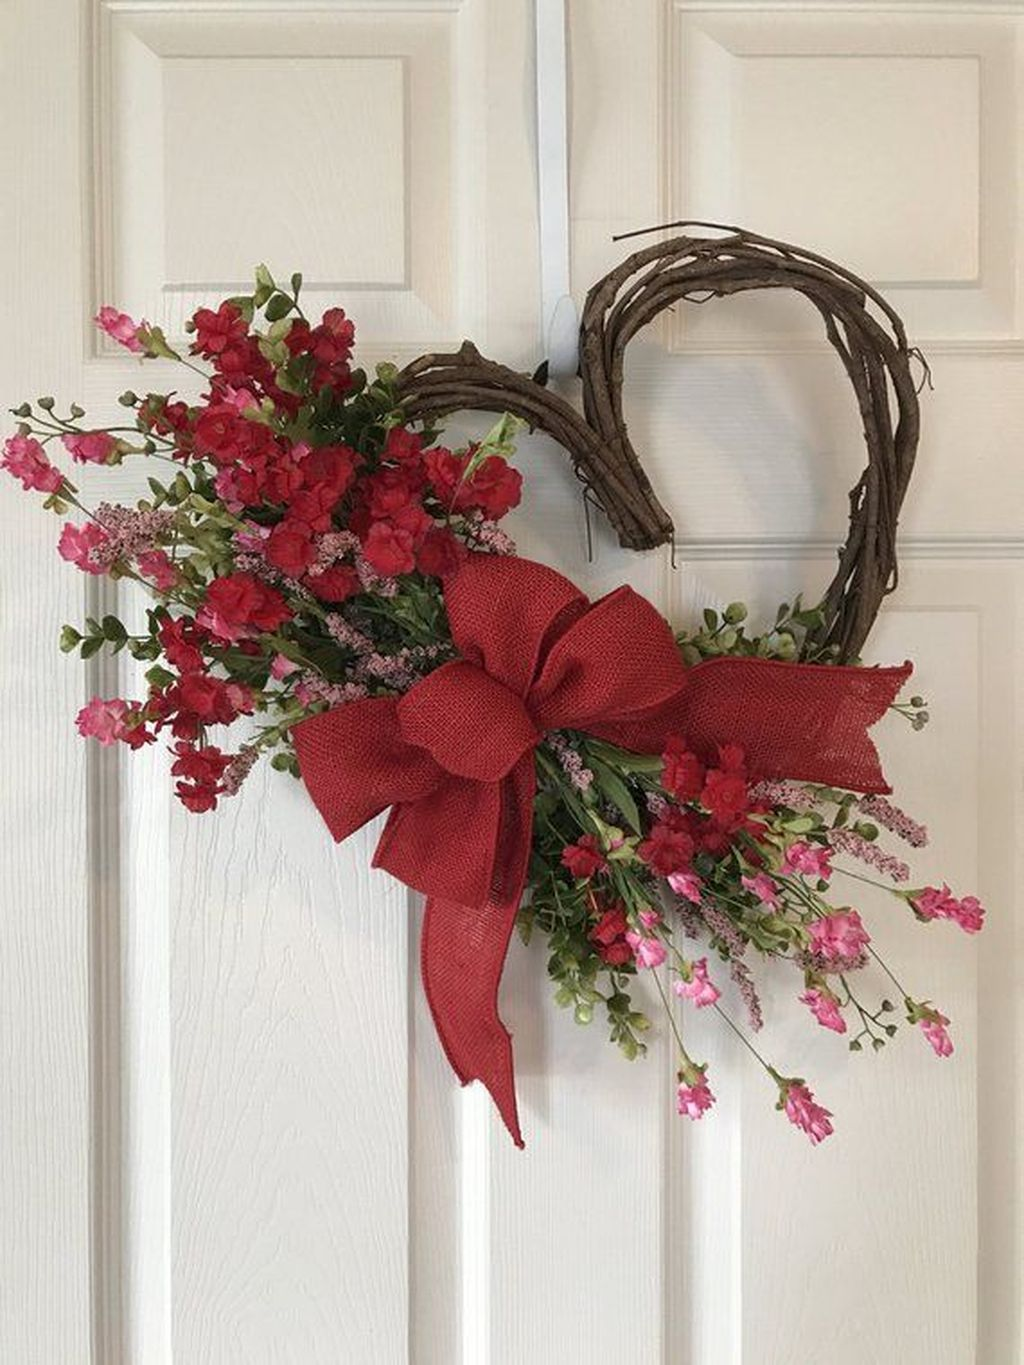 Fabulous Valentine Wreath Design Ideas FOr Your Front Door Decor 20